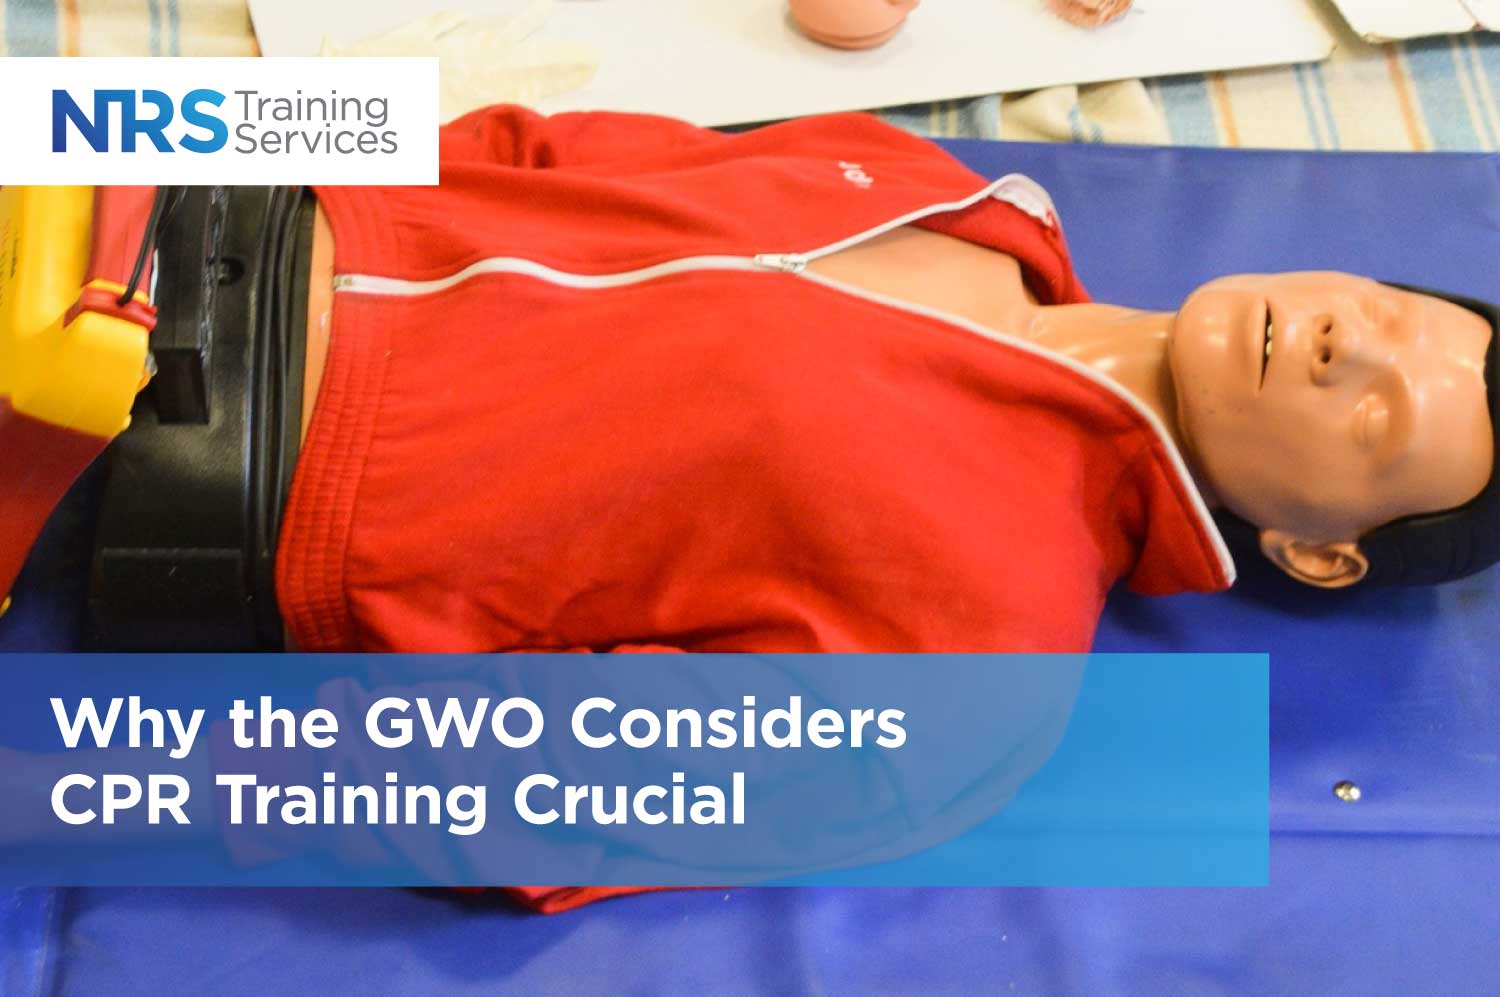 Why the GWO Considers CPR Training Crucial